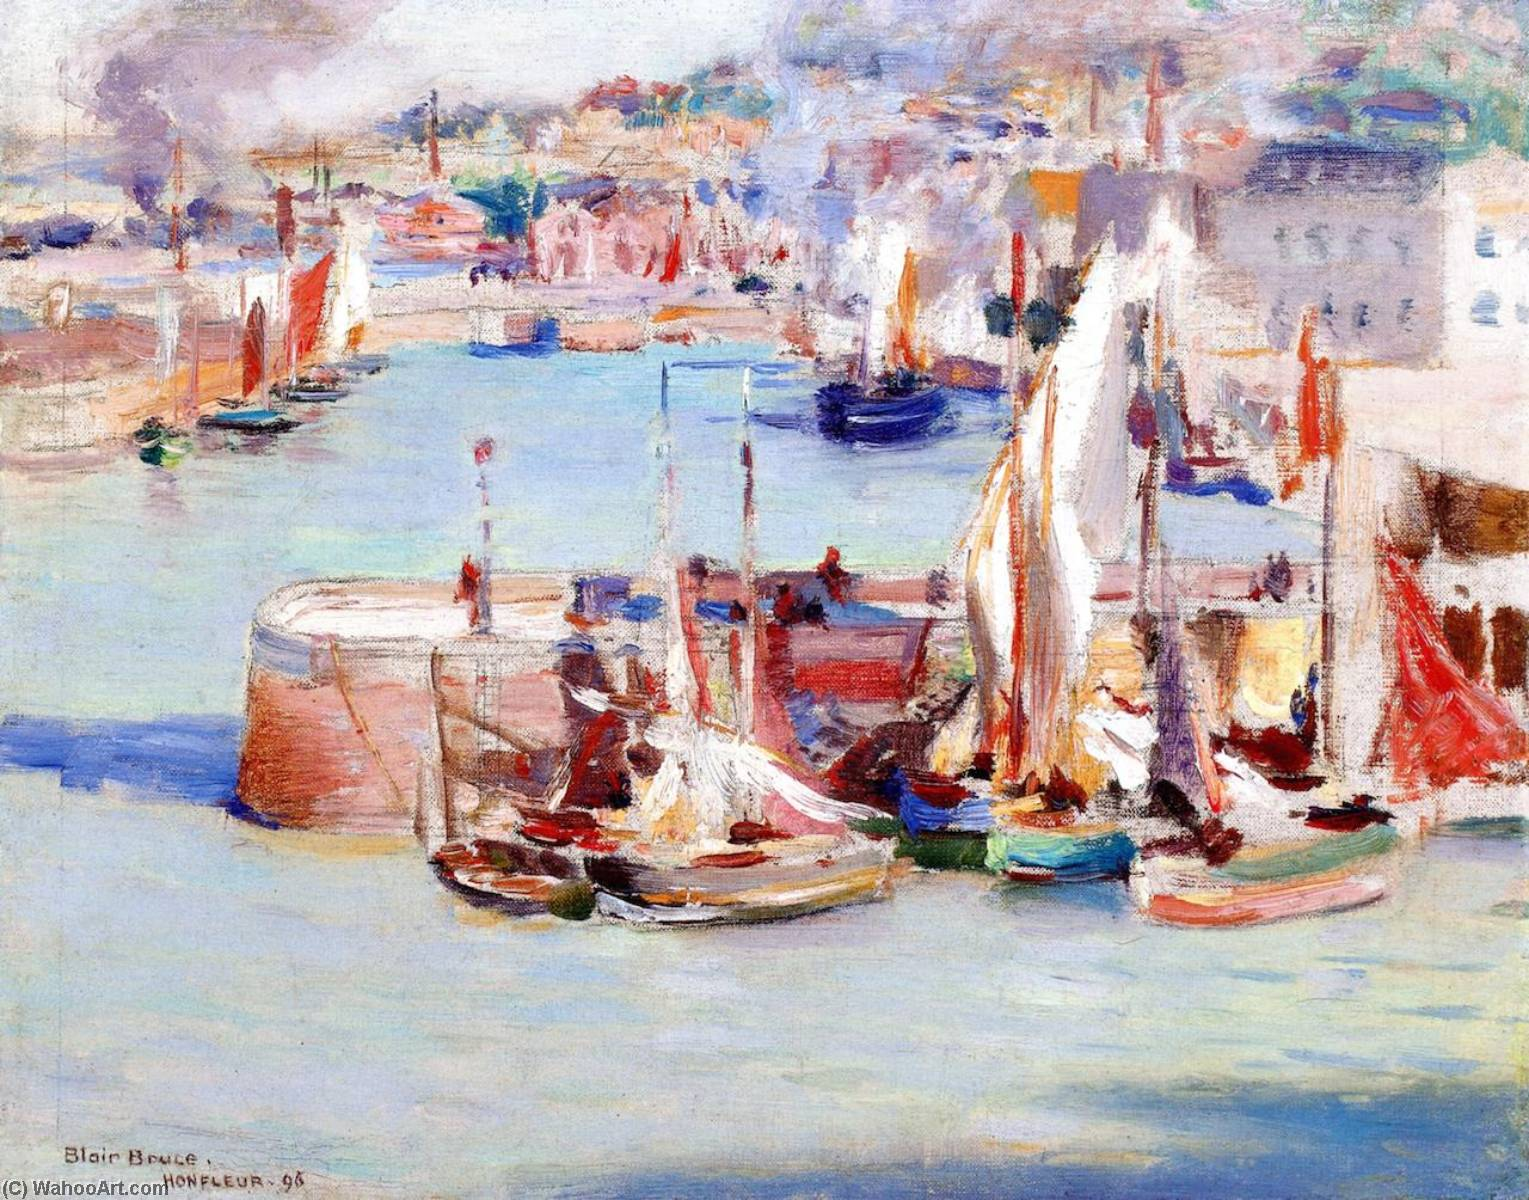 Honfleur Harbor, 1896 by William Blair Bruce (1859-1906, Canada) | Famous Paintings Reproductions | WahooArt.com